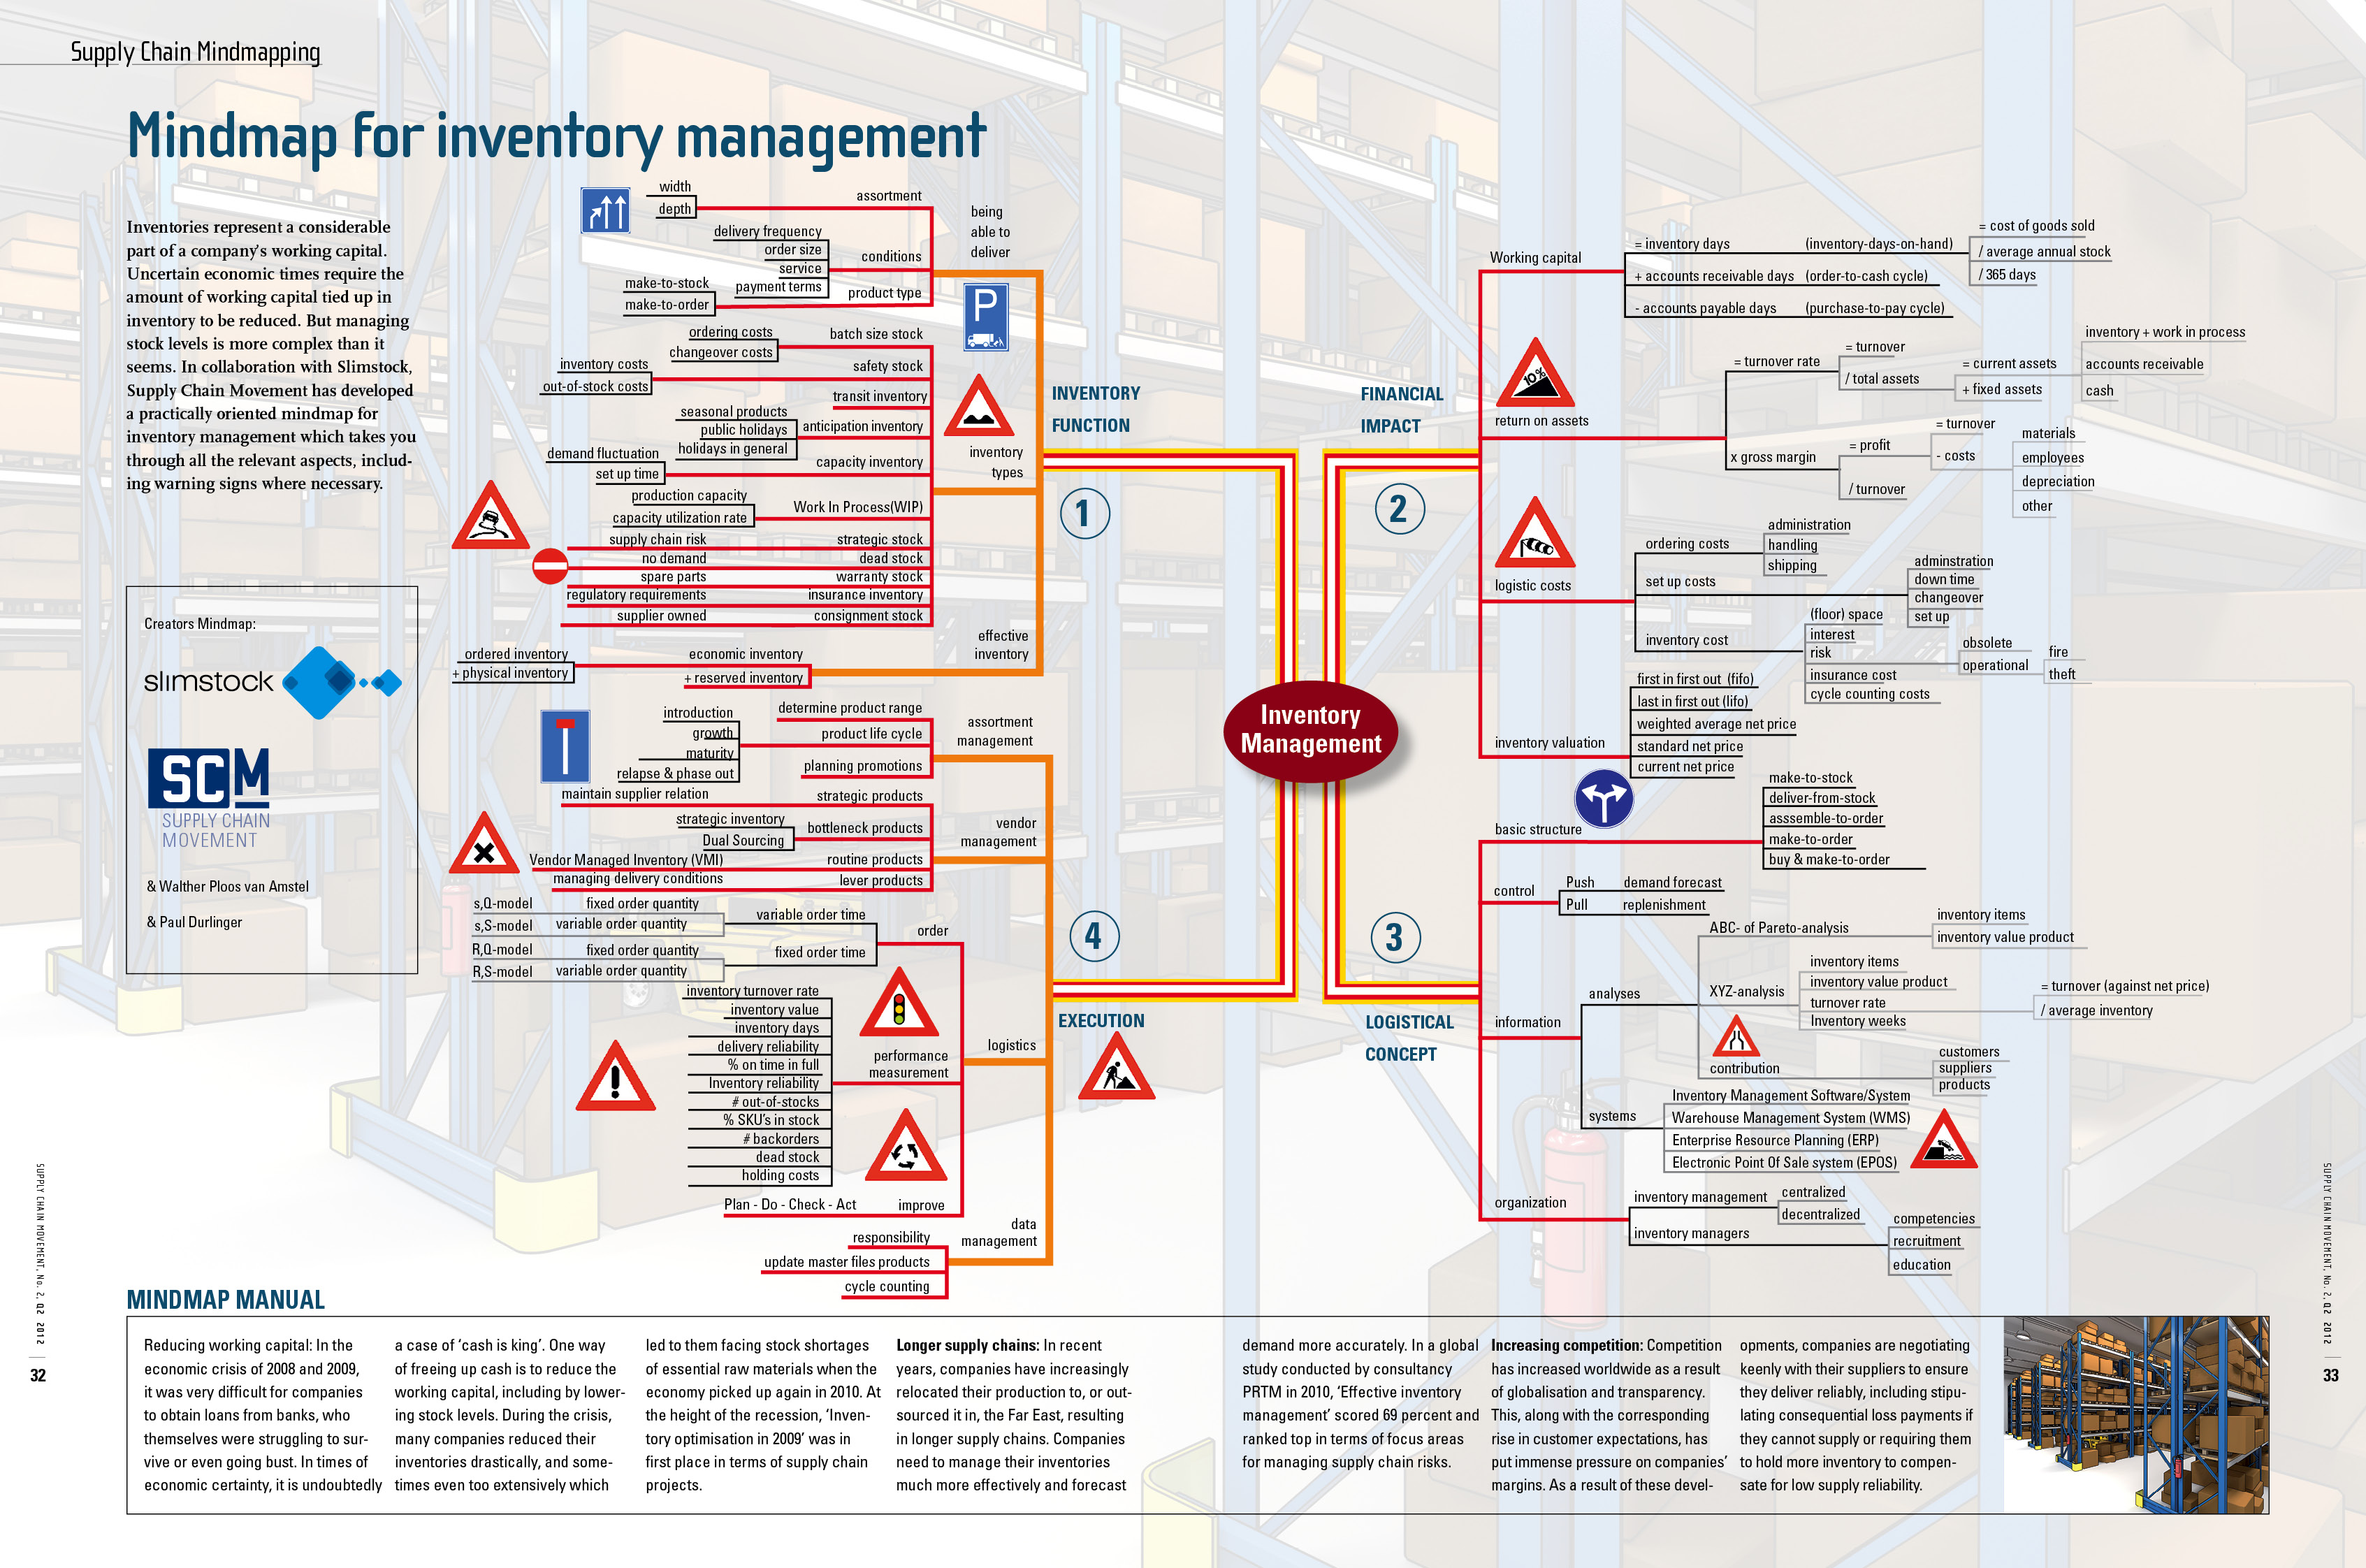 Mindmap-Inventory-Management-Supply-Chain-Movement-Slimstock-2012